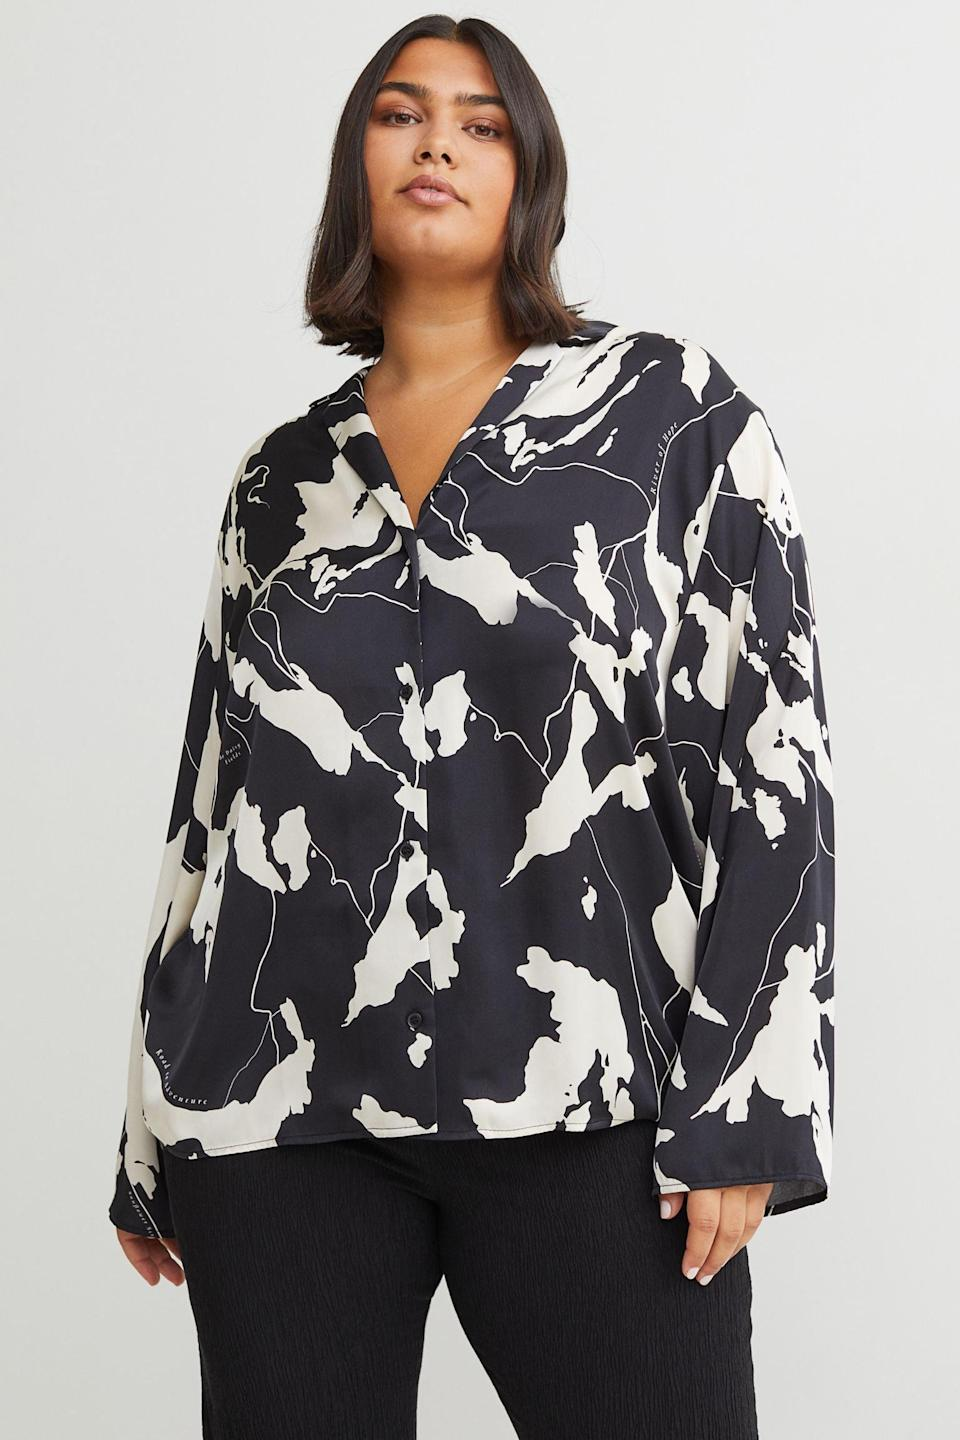 <p>This <span>Patterned Satin Shirt</span> ($24, originally $30) is perfect for an office party or a dressy event. Pair it with black trousers and some kitten heels to amp up the elegance.</p>